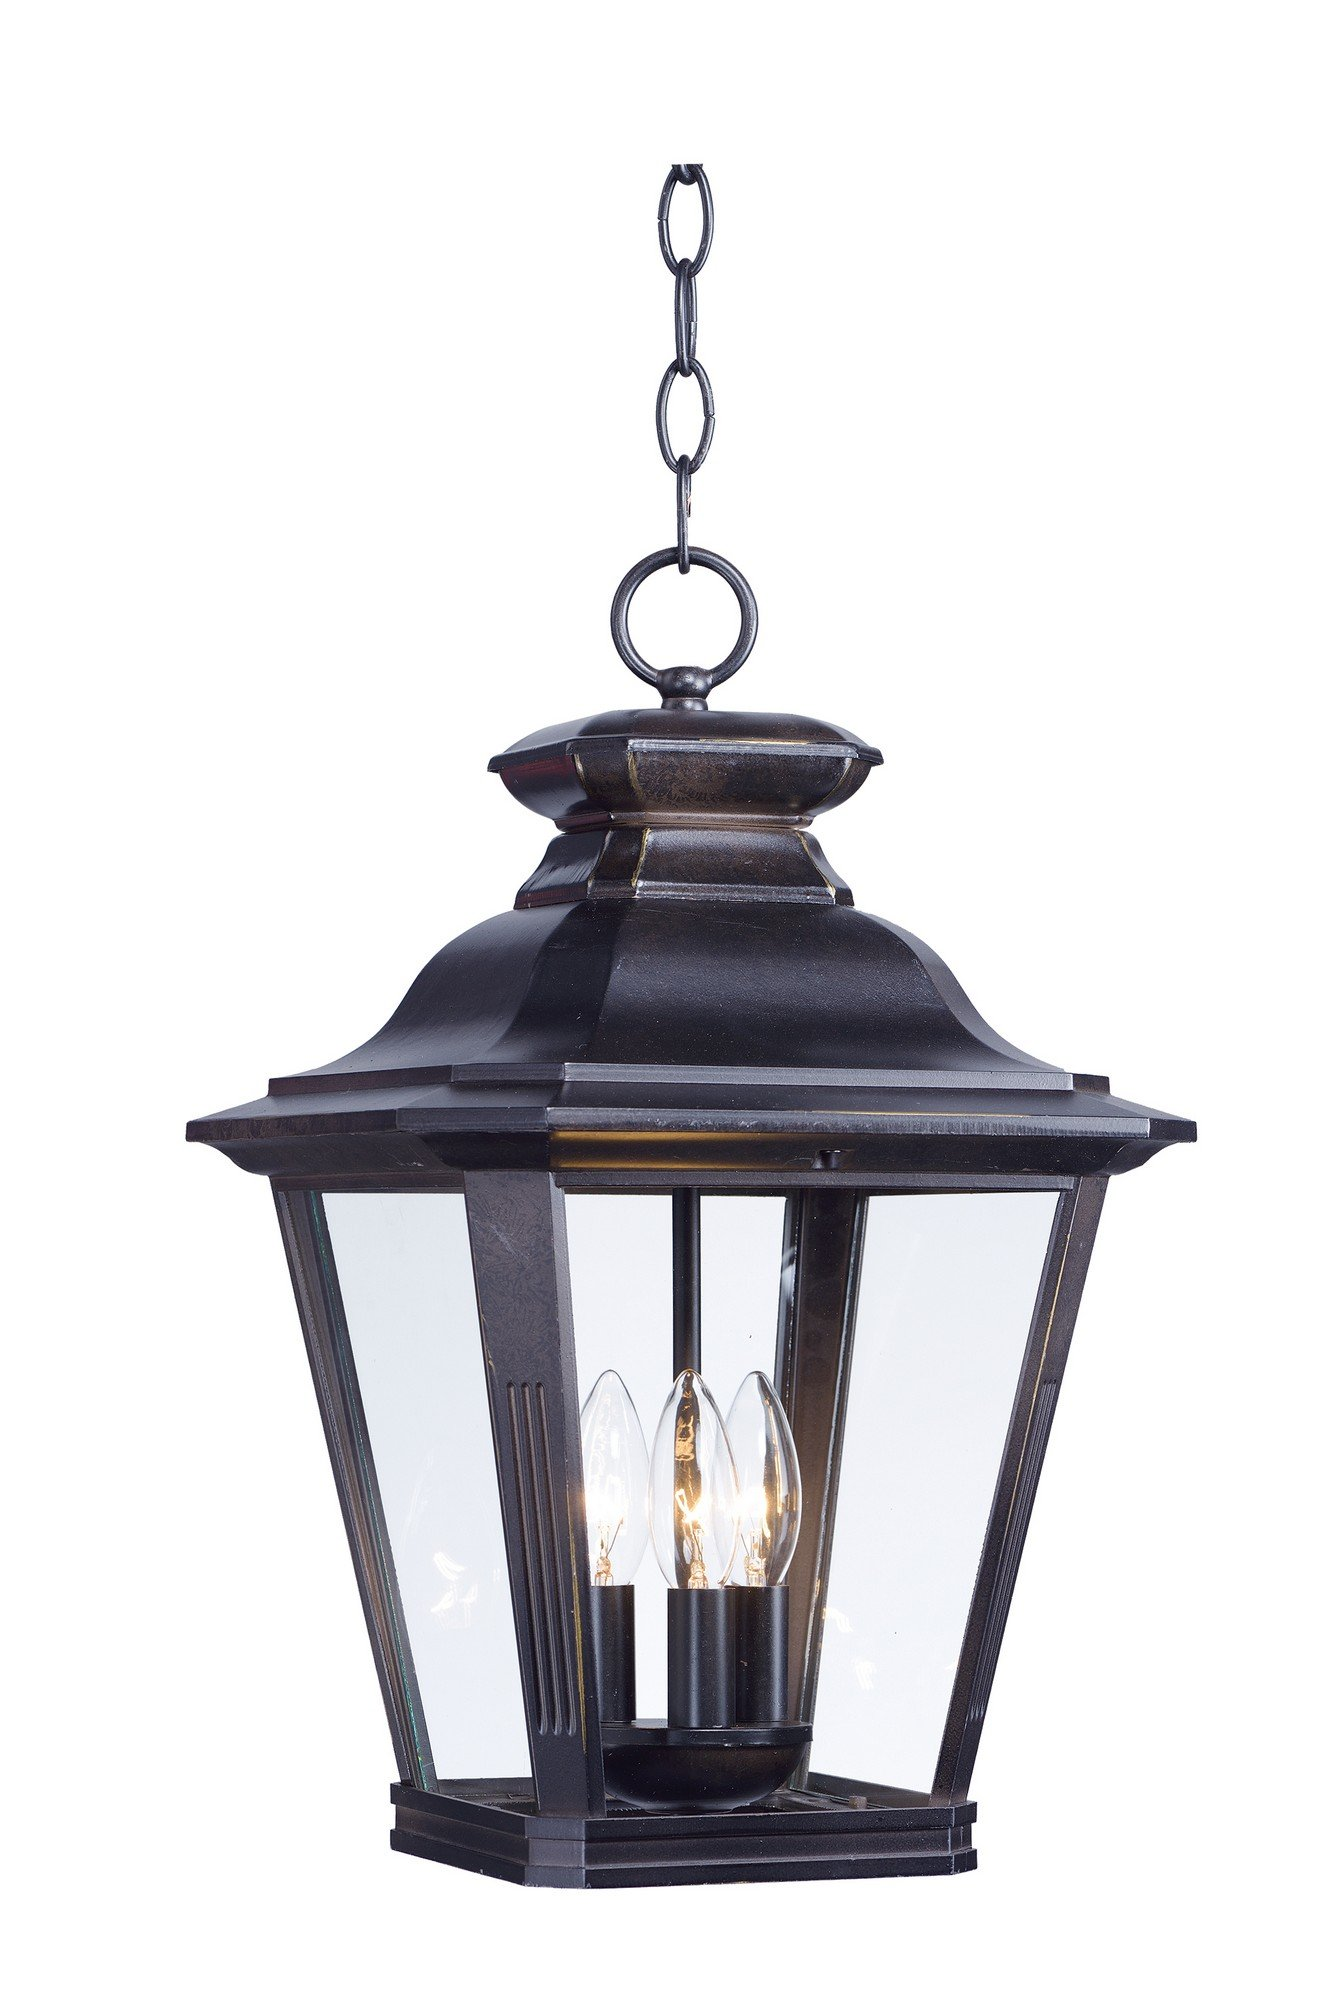 Maxim 1139CLBZ Knoxville 3-Light Outdoor Pendant, Bronze Finish, Clear Glass, CA Incandescent E12 60 Bulb , 17W Max., Damp Safety Rating, 2700K Color Temp, Acrylic Shade Material, 2600 Rated Lumens by Maxim Lighting